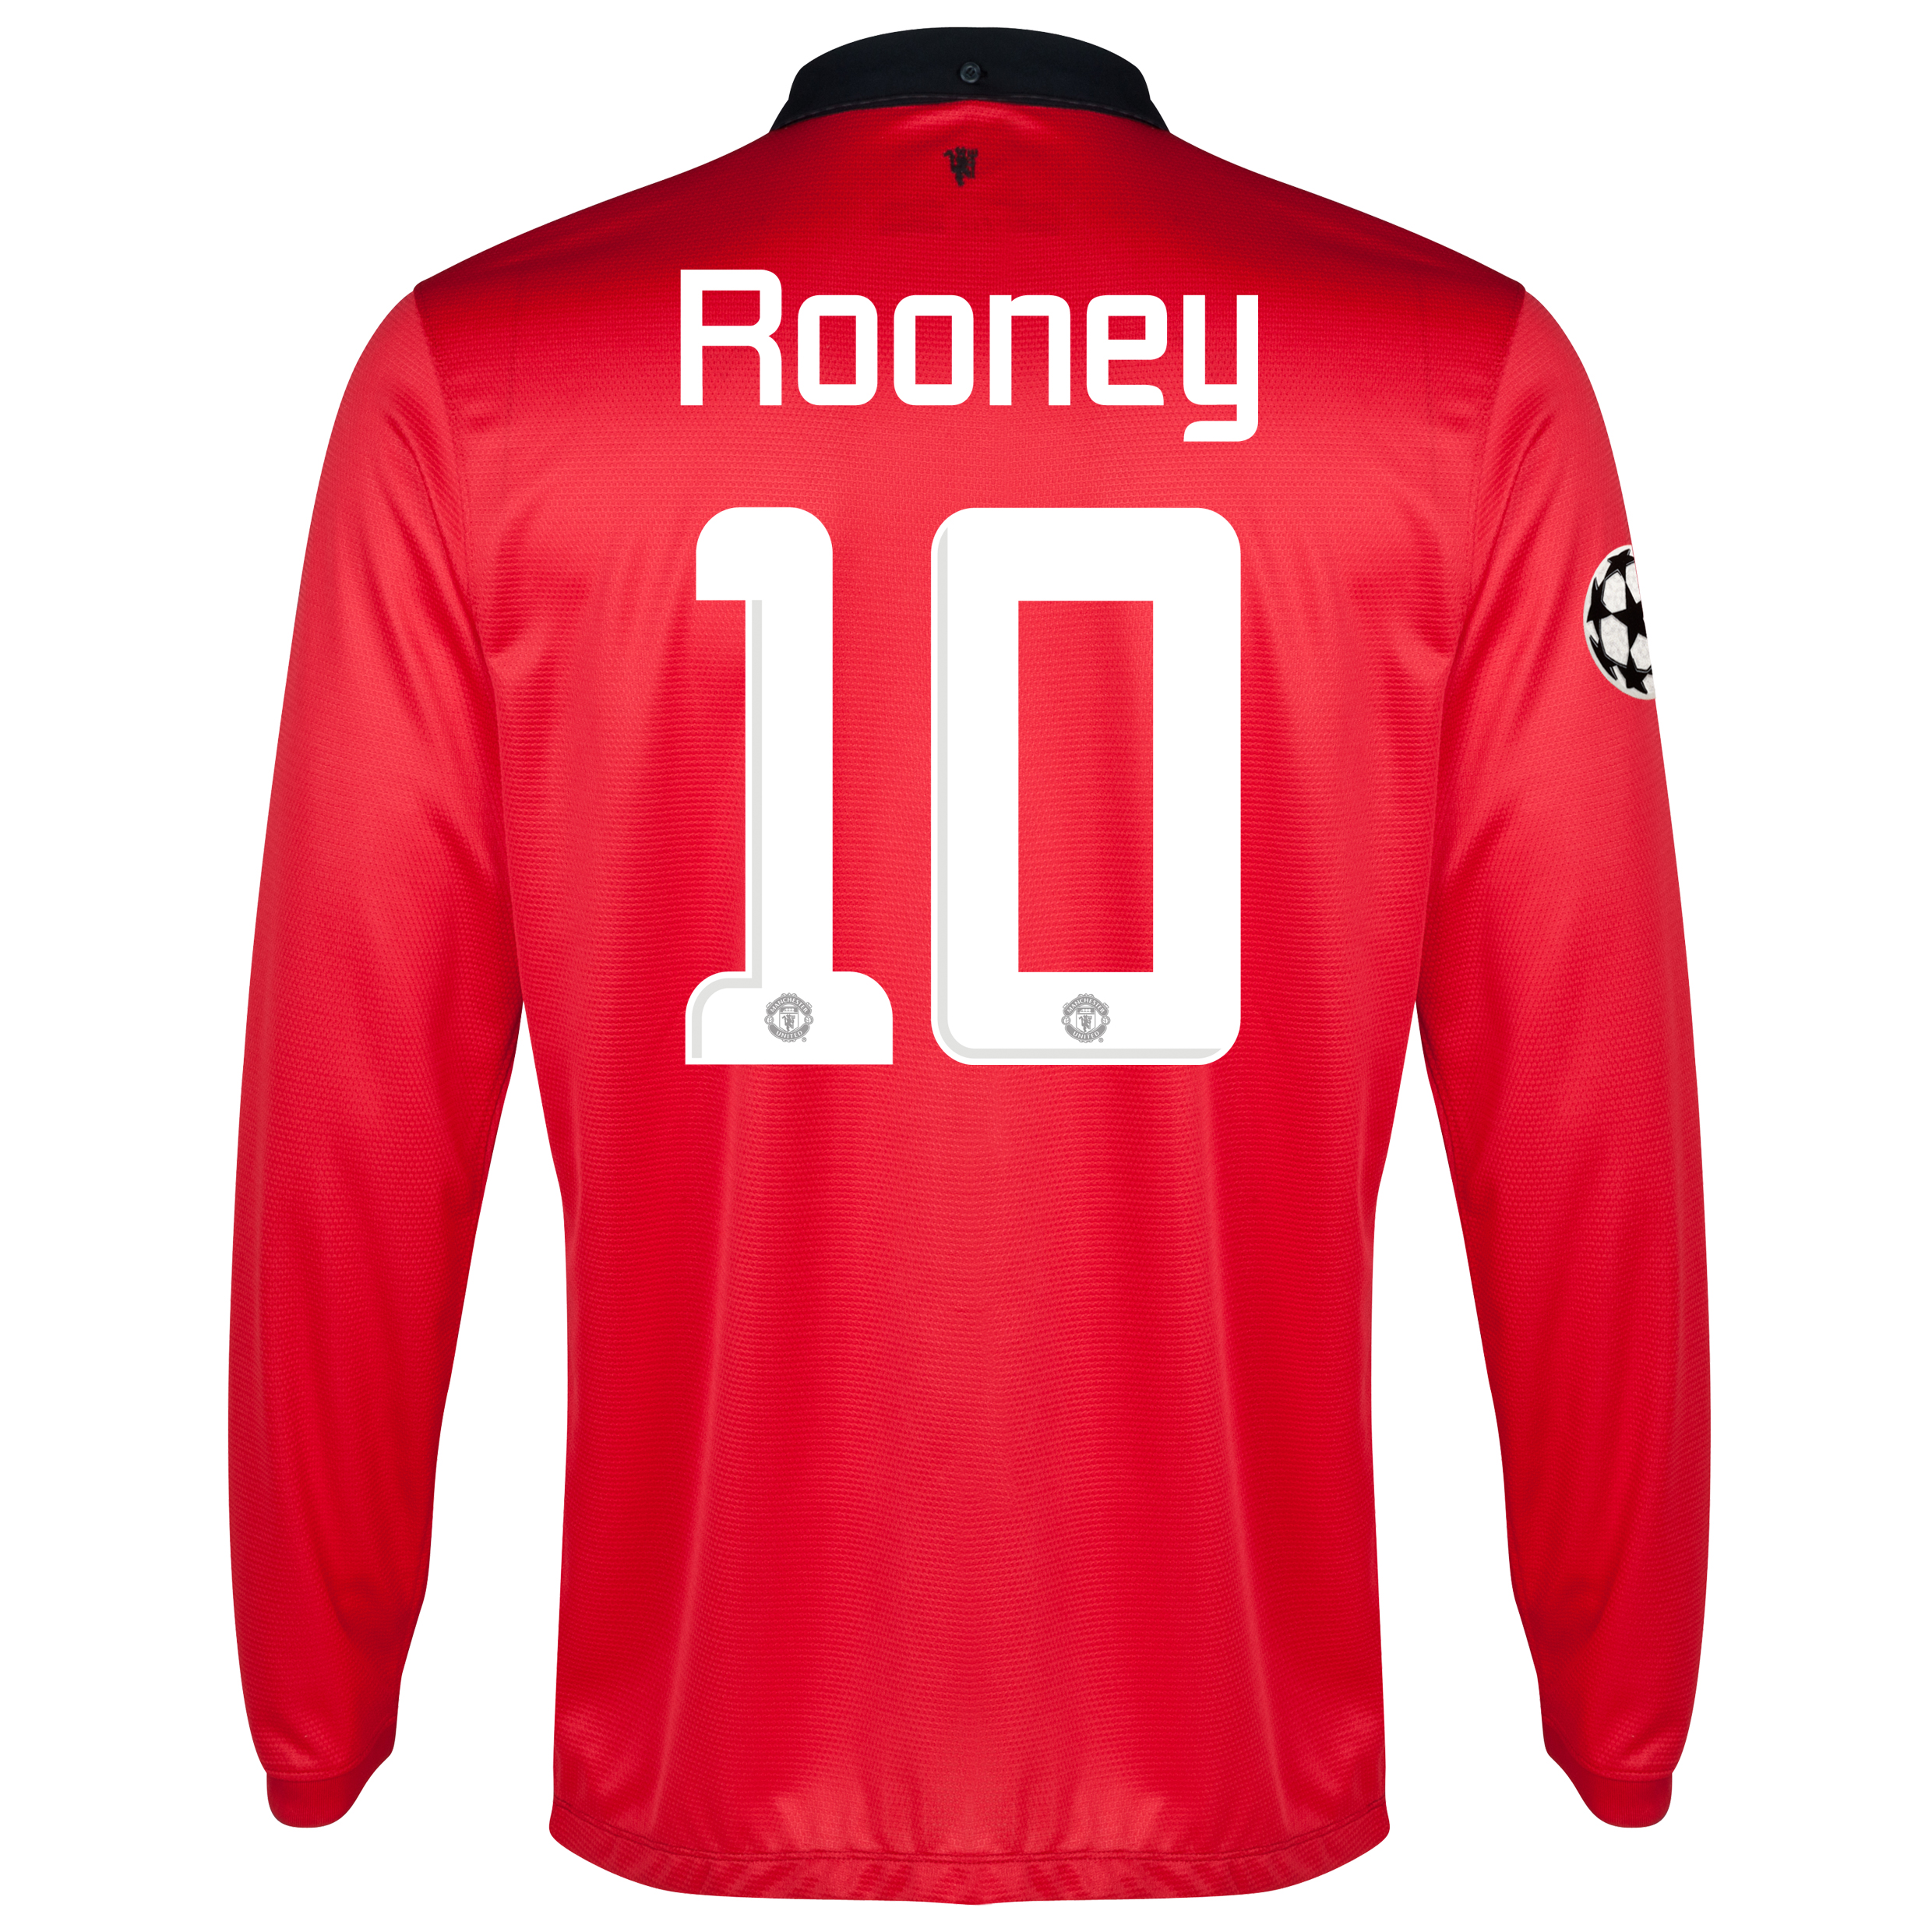 Manchester United UEFA Champions League Home Shirt 2013/14 - Long Sleeved - Kids with Rooney 10 printing